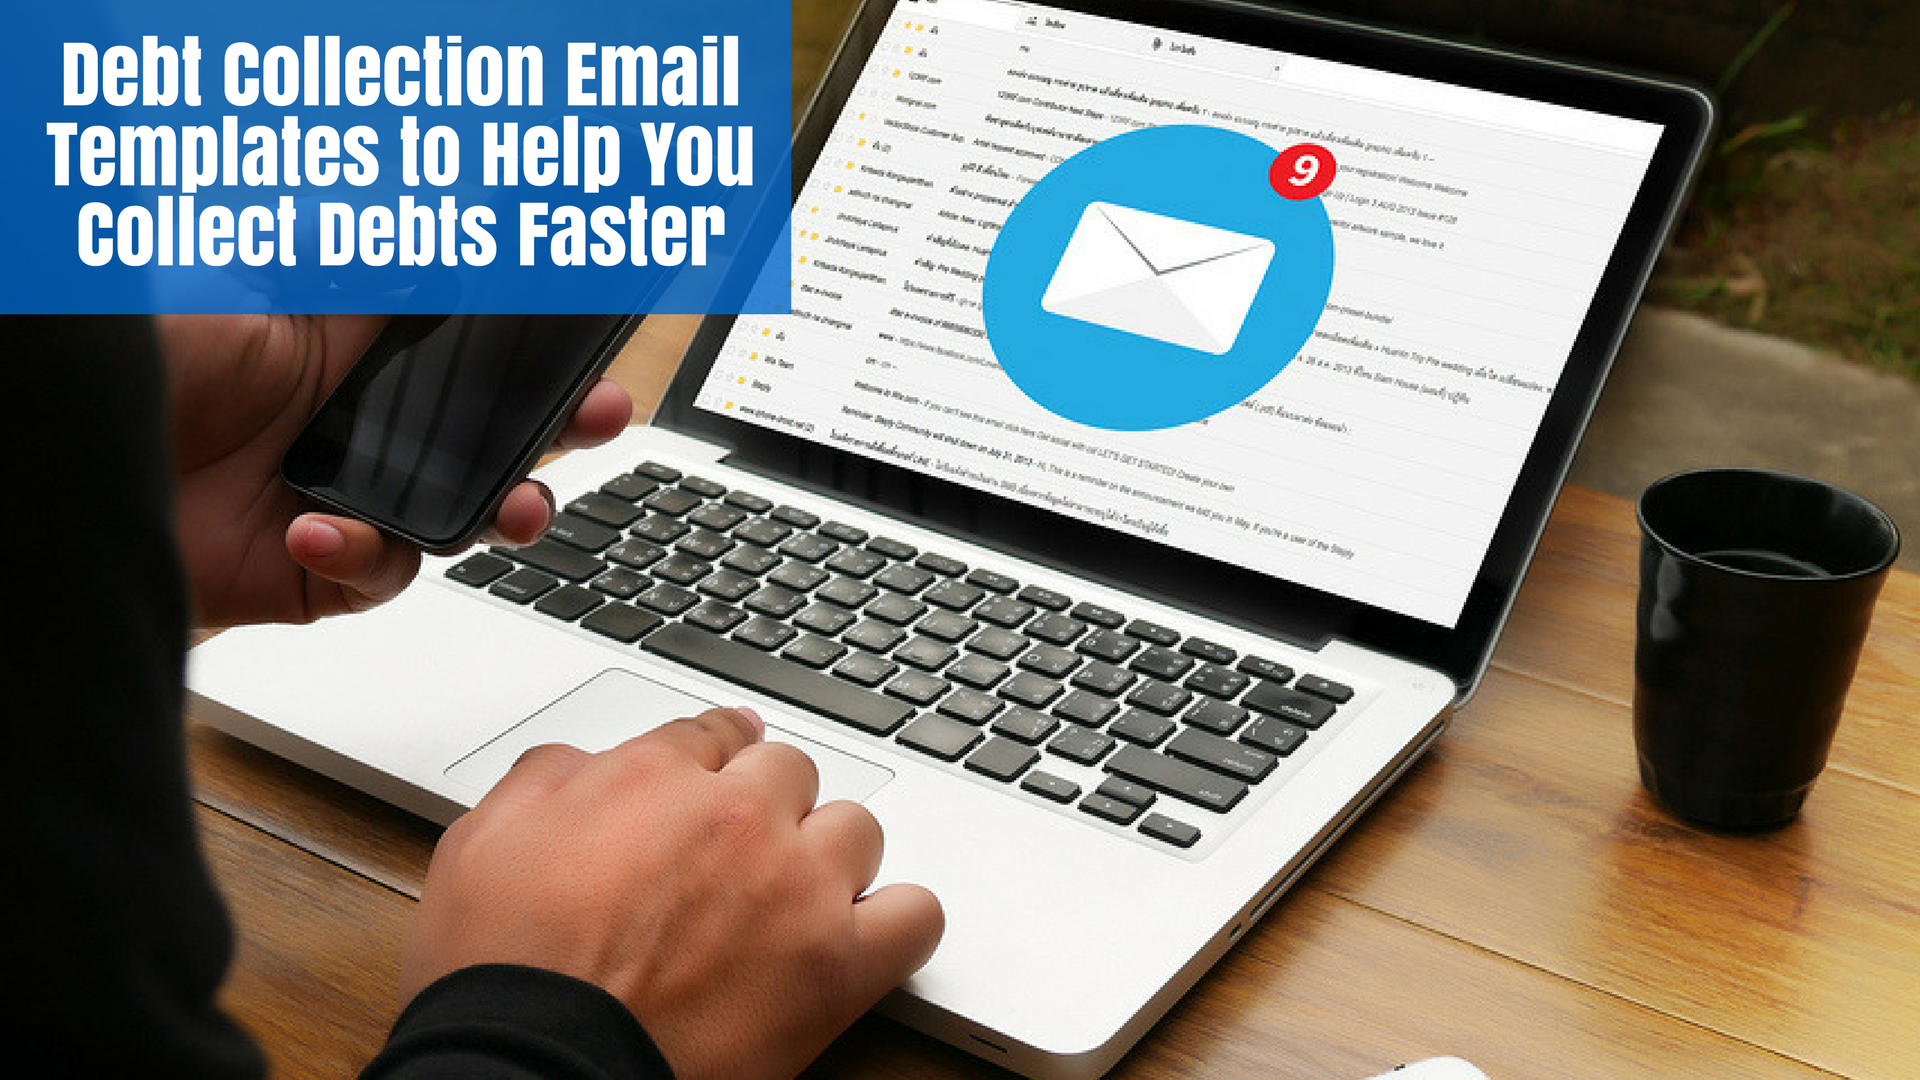 Debt Collection Email Templates To Help You Collect Debts